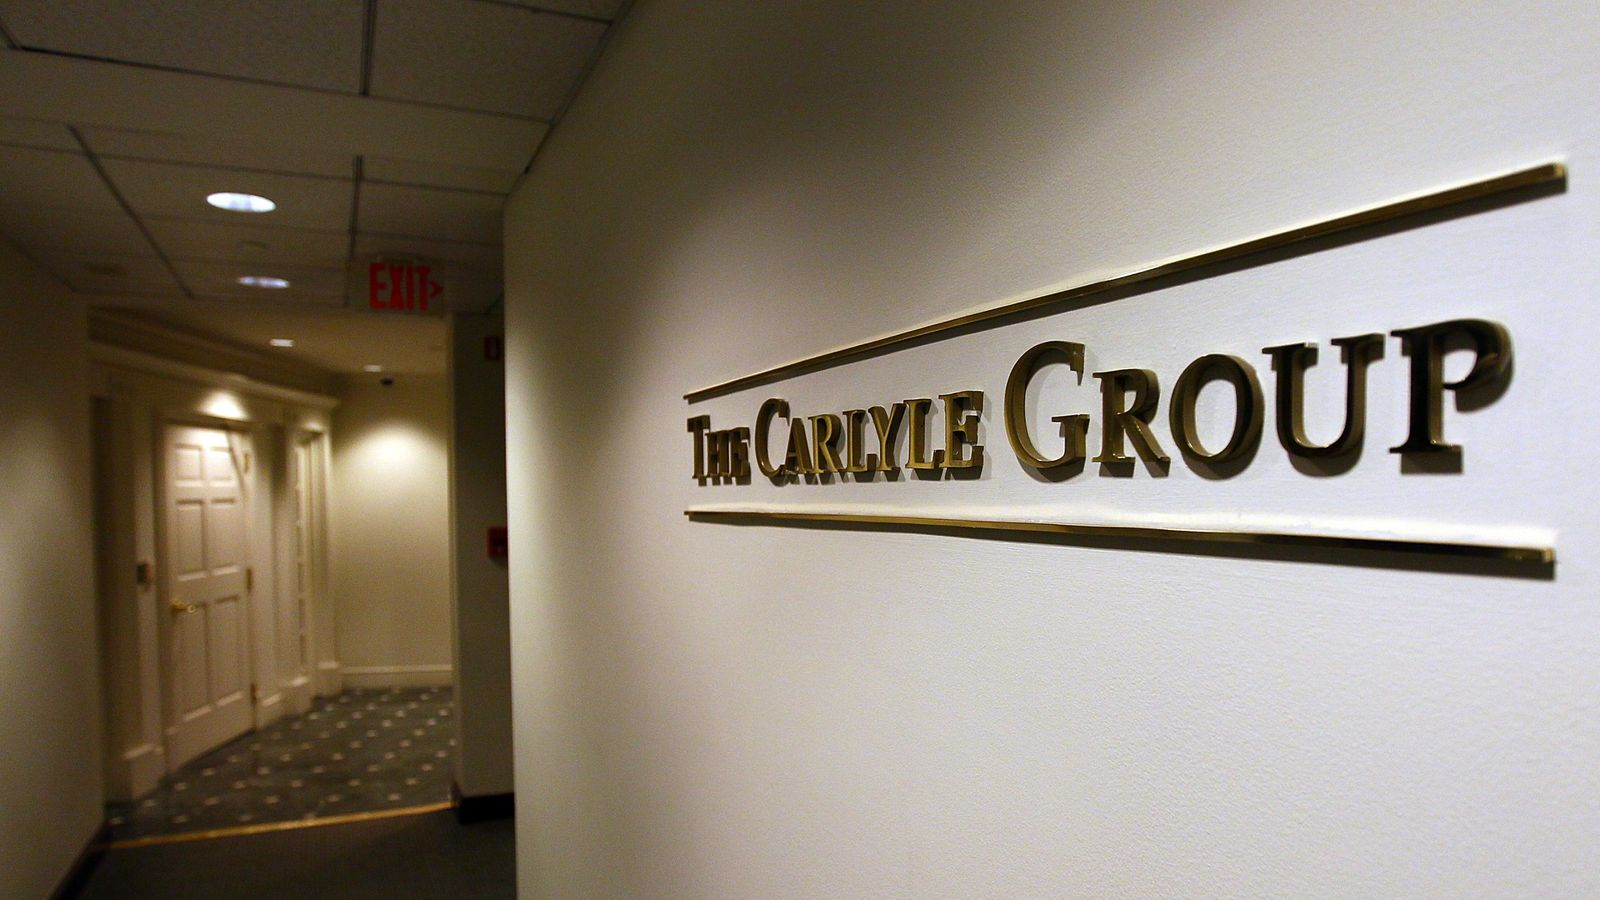 Carlyle snaps upwealth manager Harwood in £100m deal - EpicNews